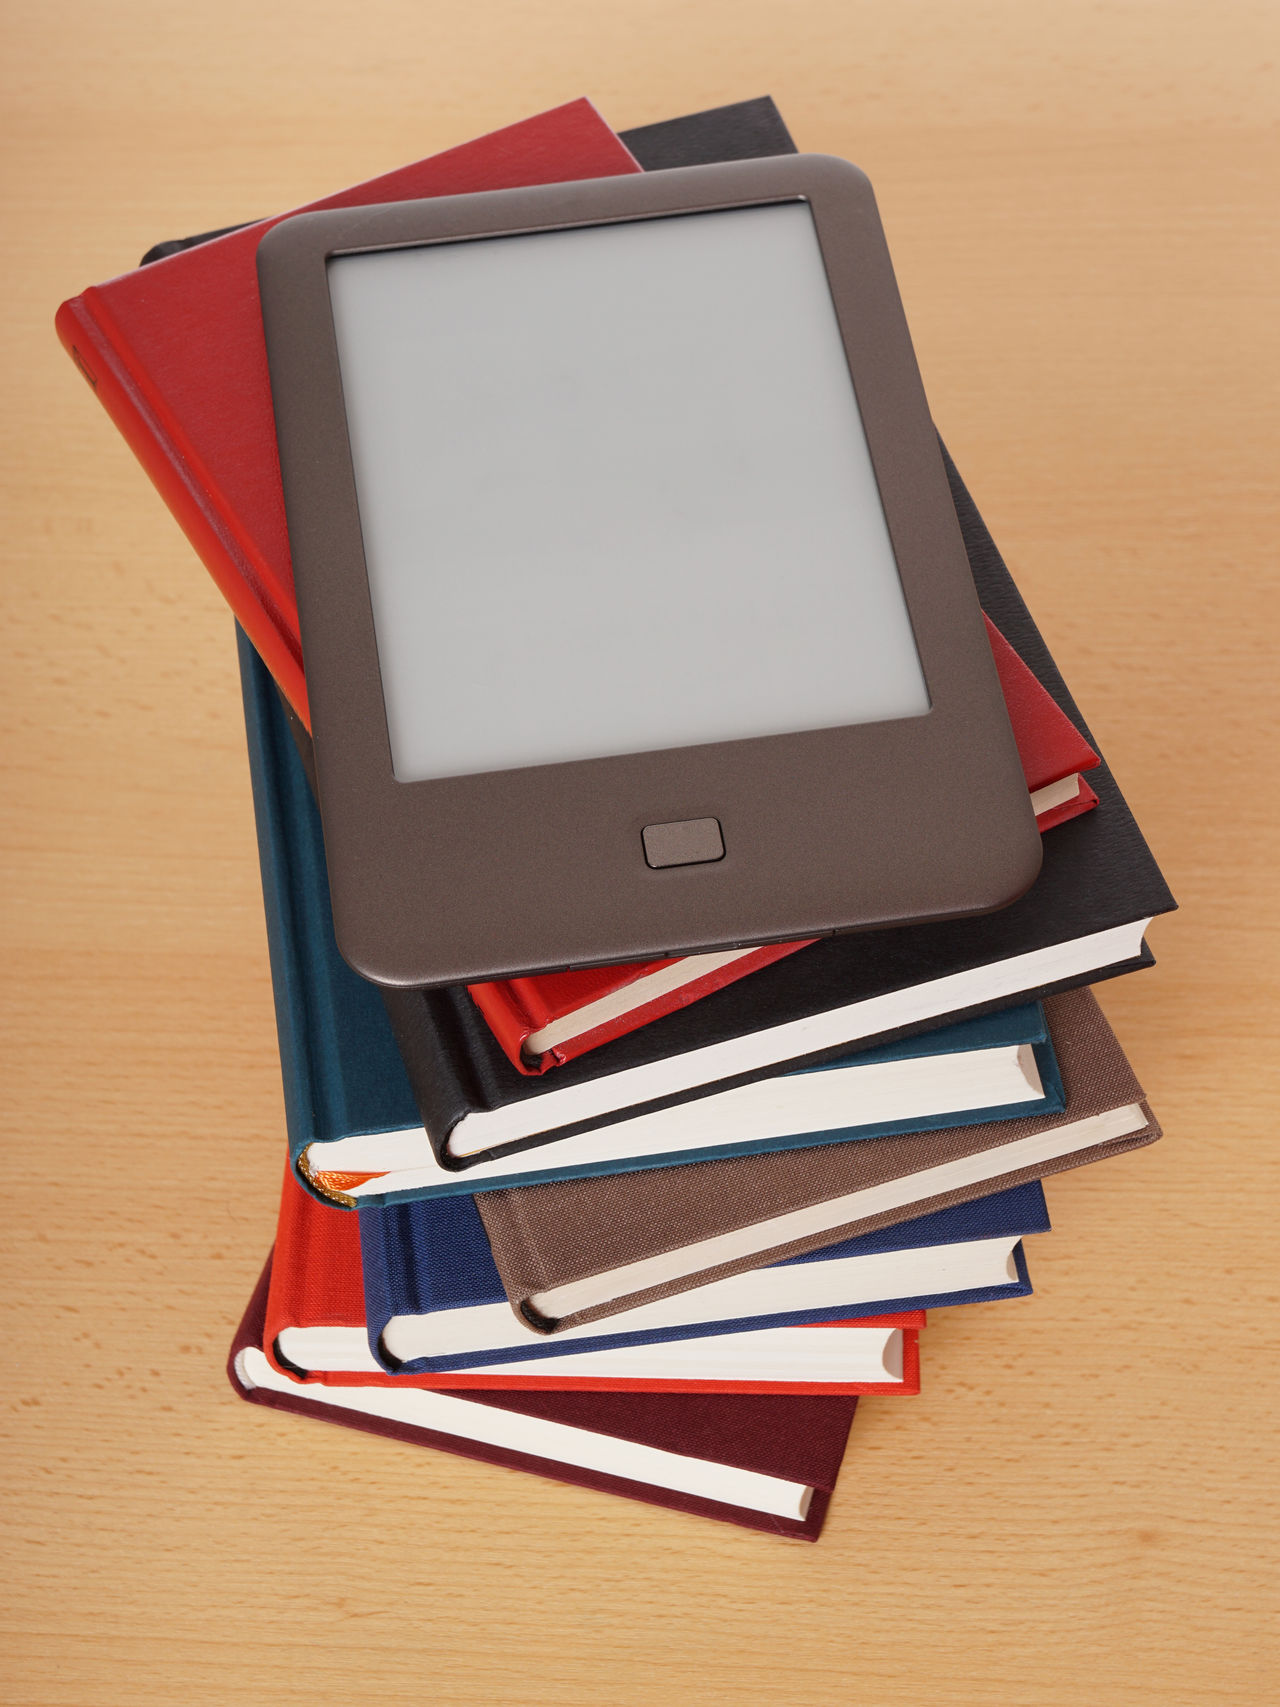 Book Books E-book E-book Reader Ebook Ebookreader Education No People Old Versus New Pile Reading Stack Still Life Technology